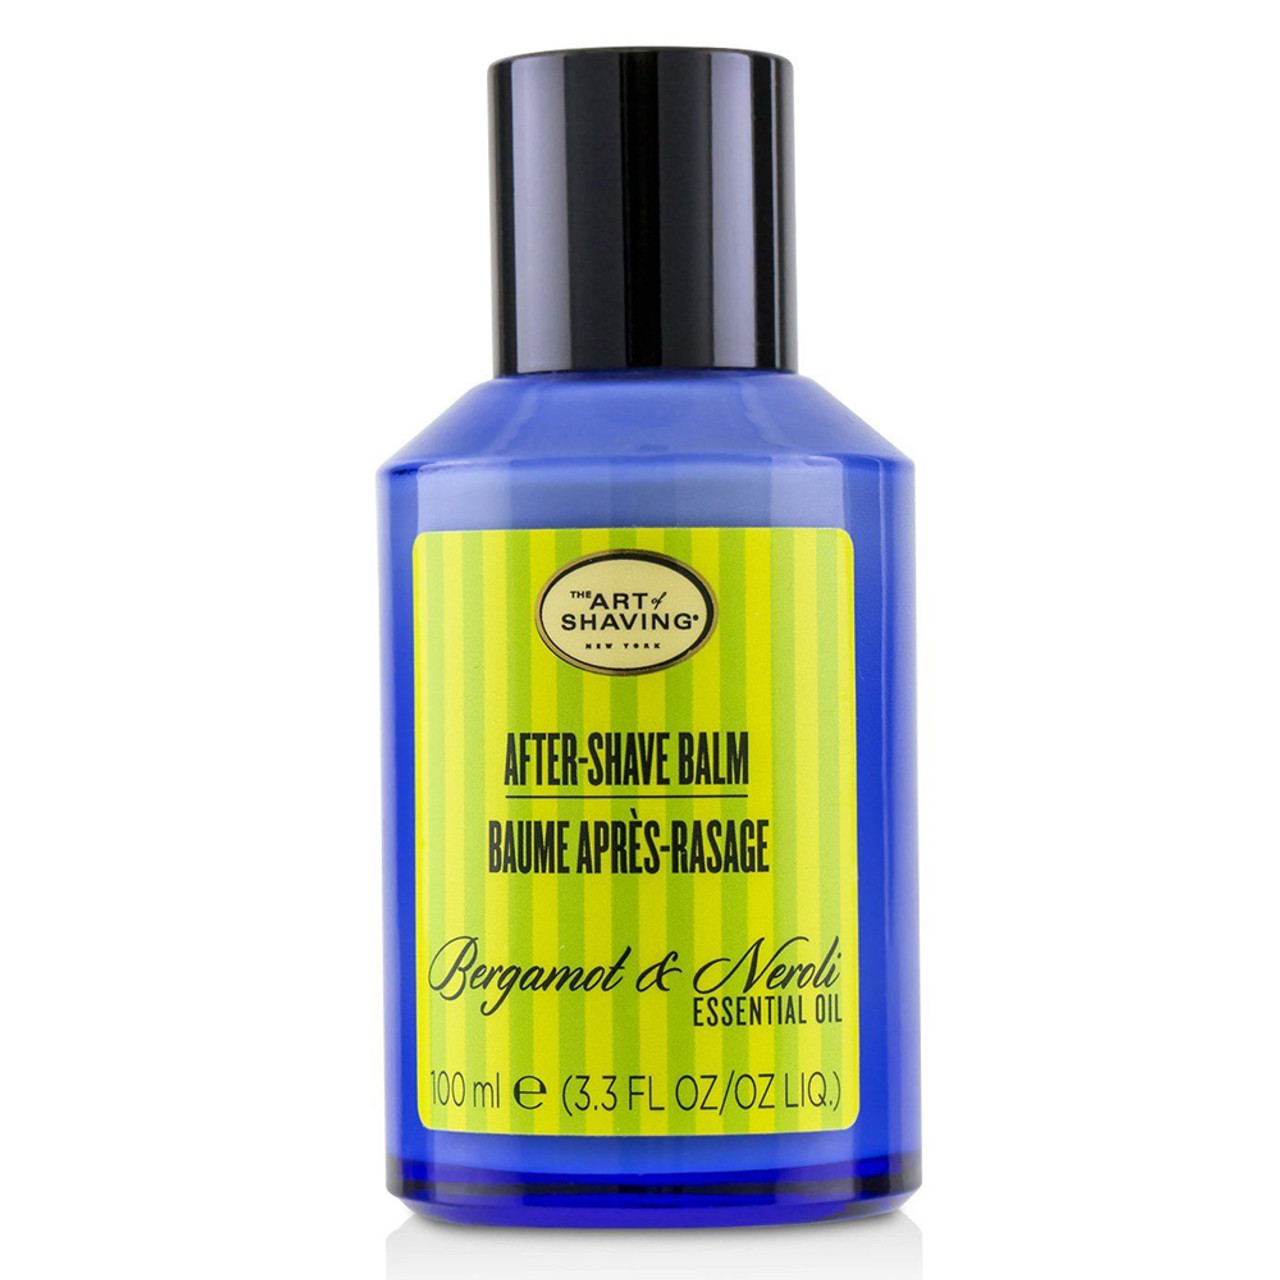 The Art of Shaving After Shave Balm Sandalwood